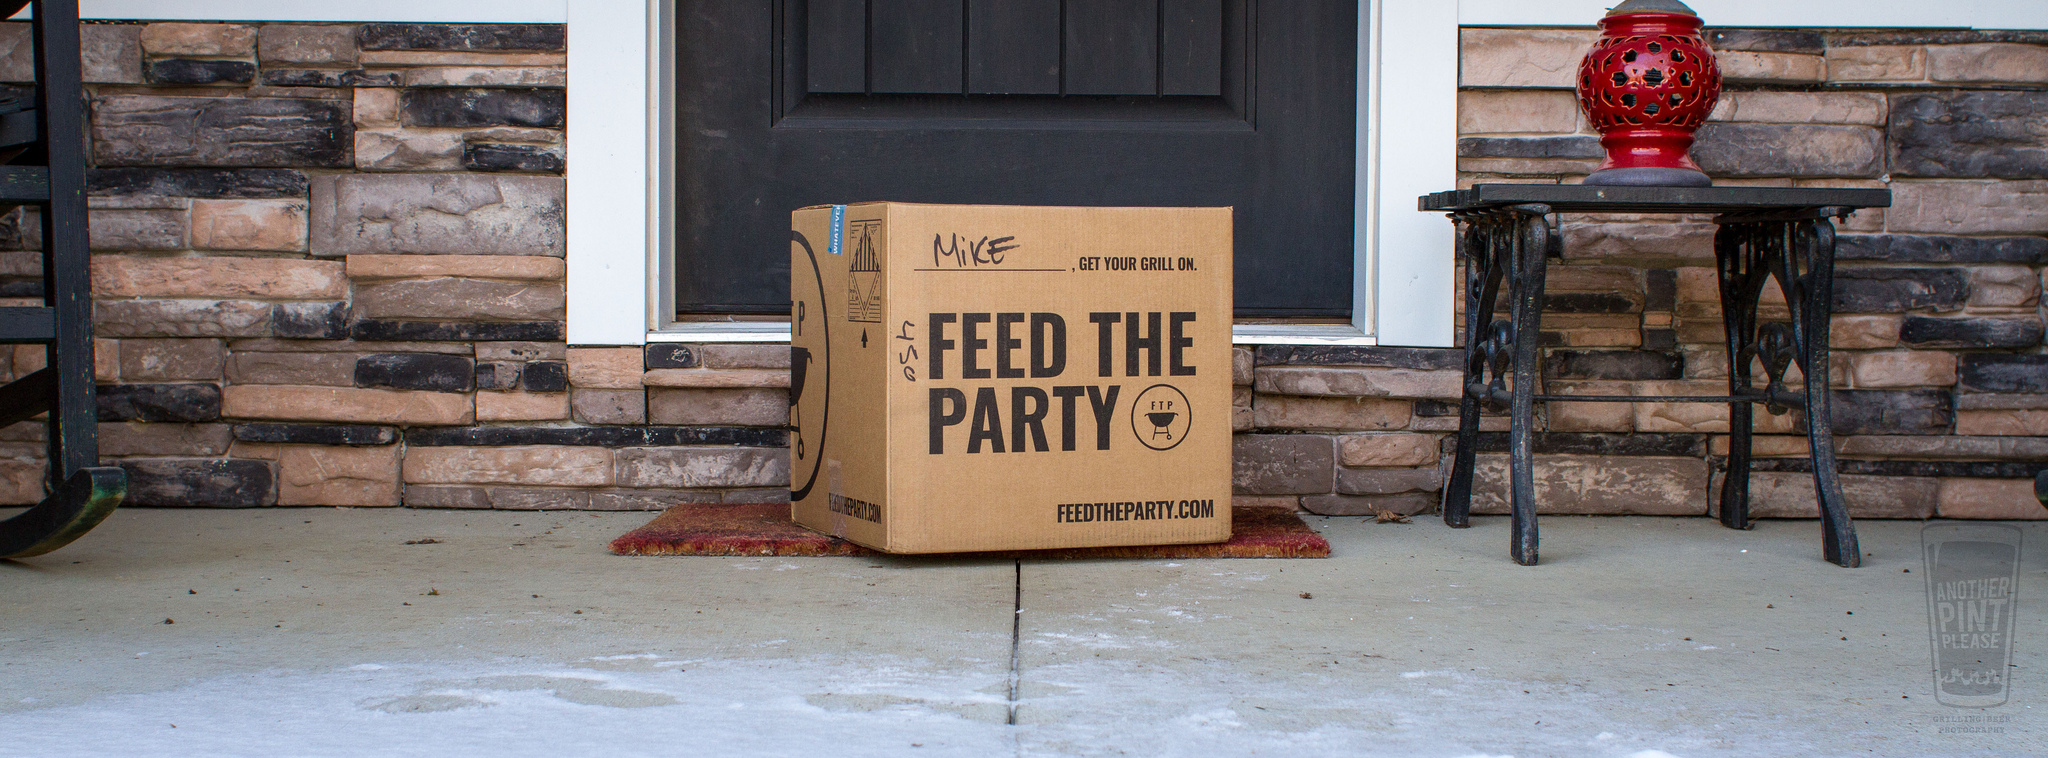 feed the party.com